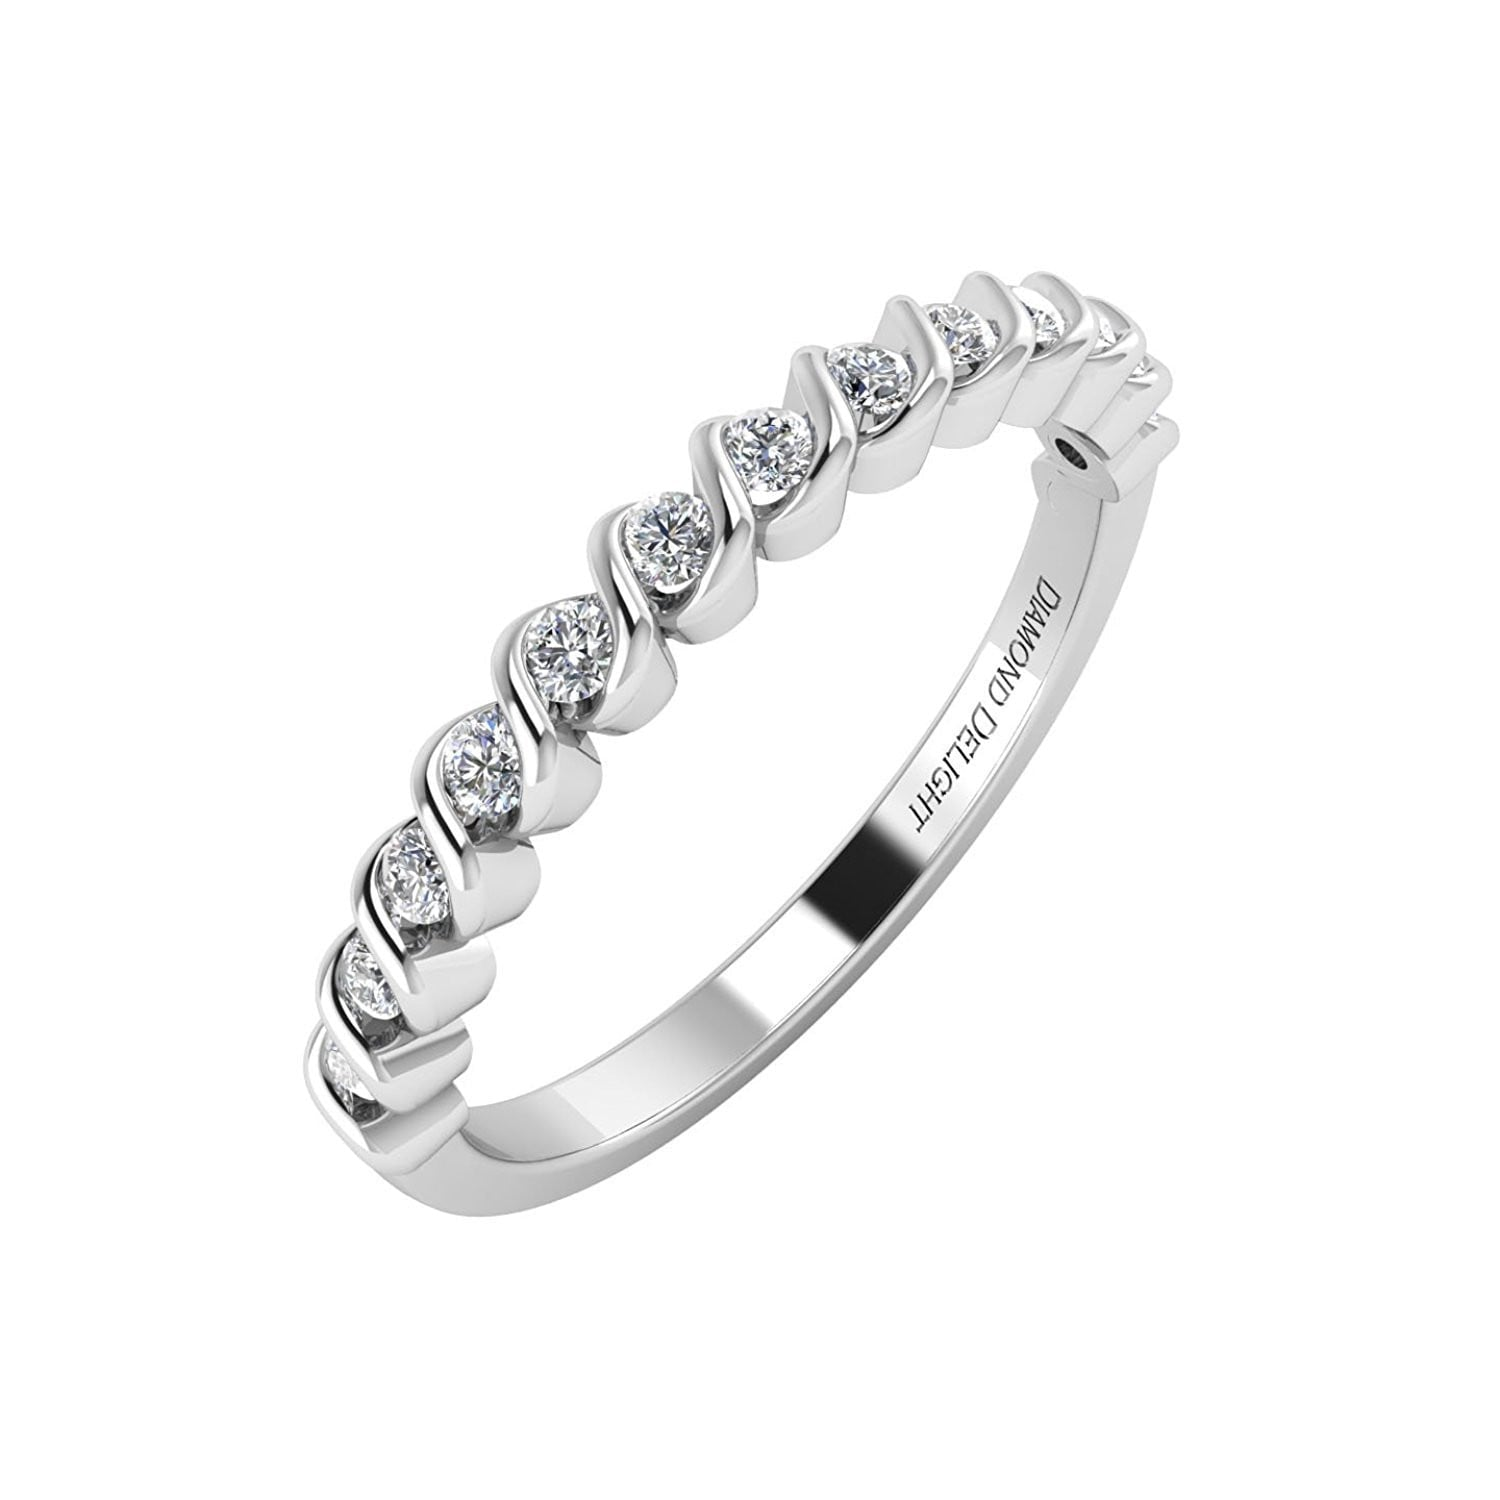 wedding ctw diamond products band rings petite collections vir jewels white in size bands gold